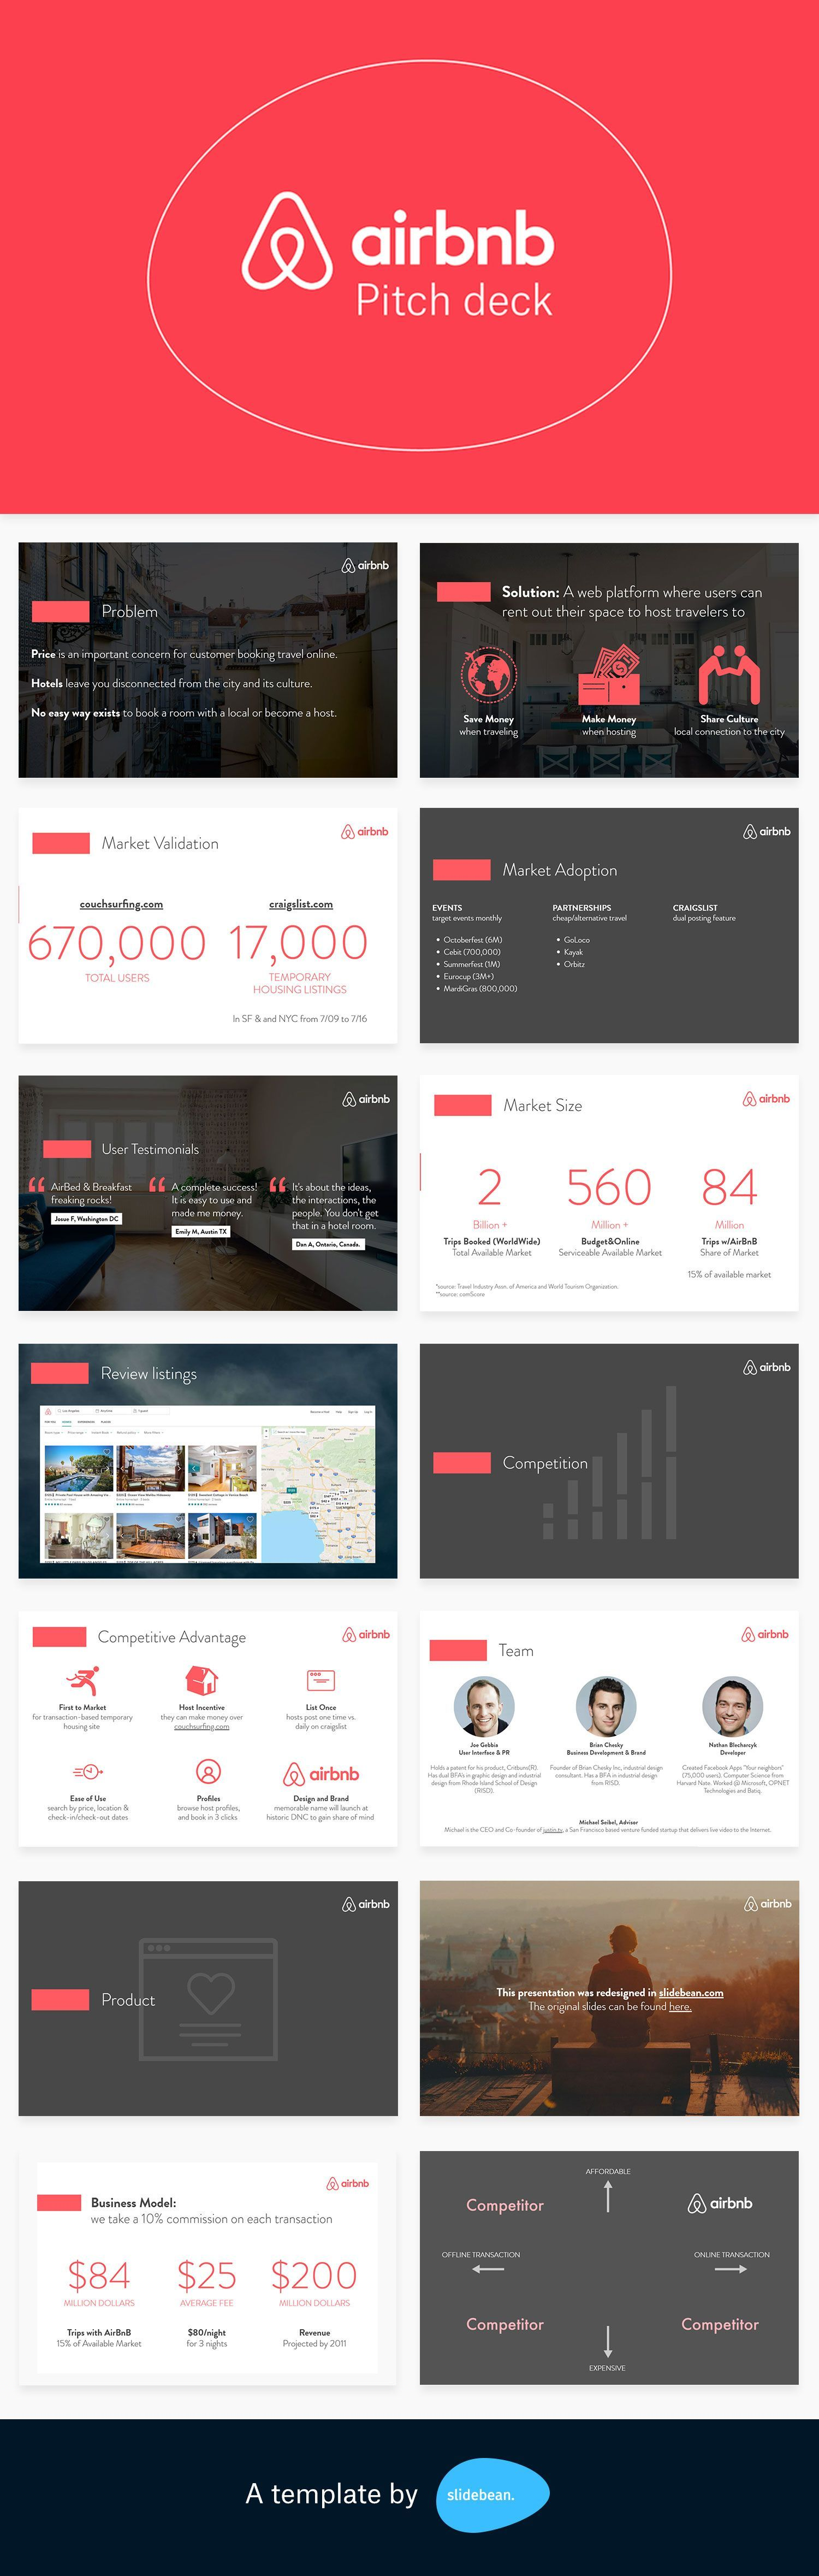 Airbnb Pitch Deck Template Helpful Daily Pins Pinterest Design